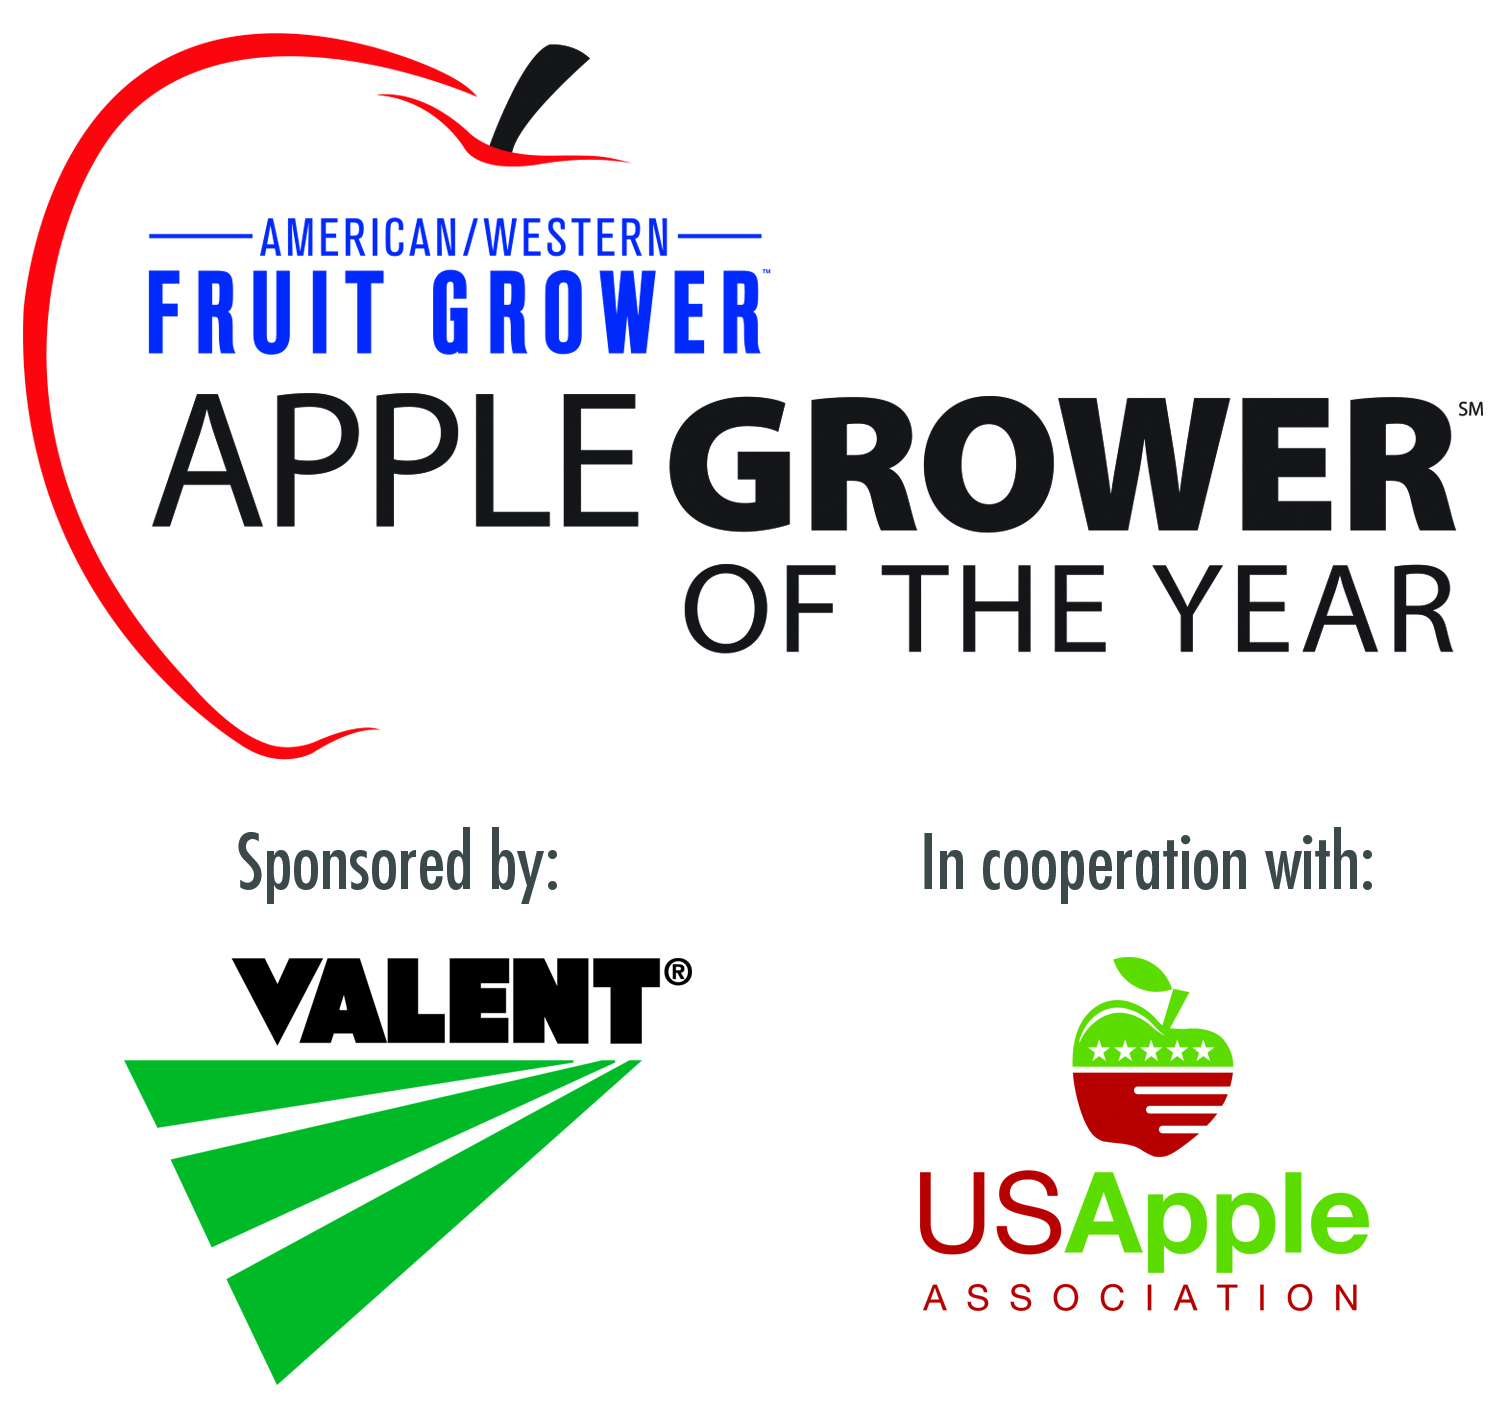 Apple-Grower-of-the-Year-Pt-1